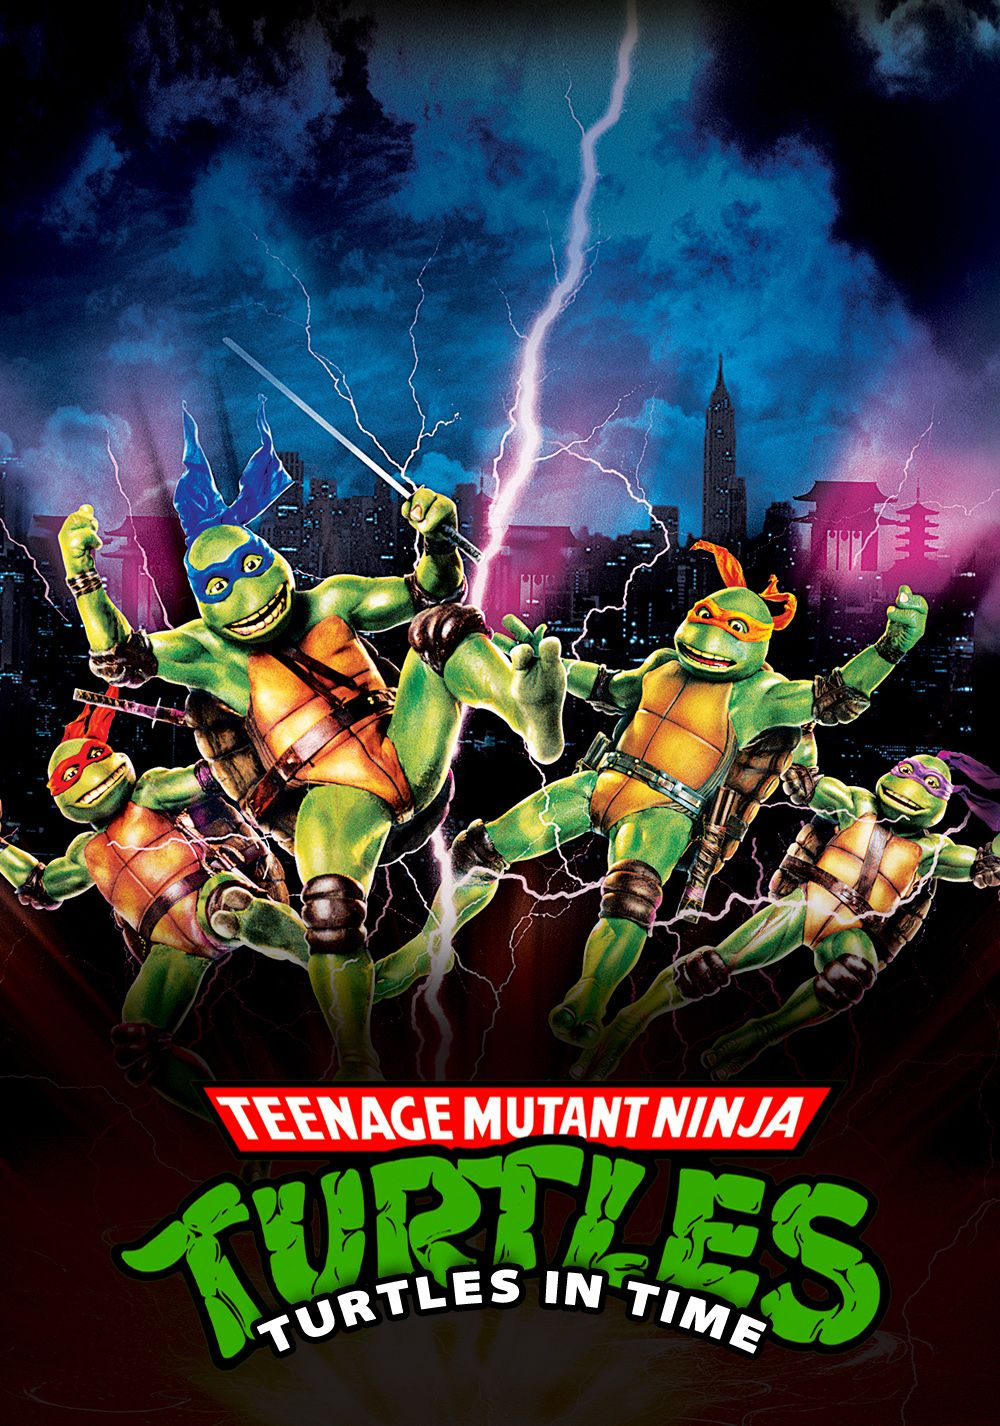 Tmnt 3 Yahoo Image Search Results Teenage Mutant Ninja Turtles Teenage Mutant Ninja Teenage Mutant